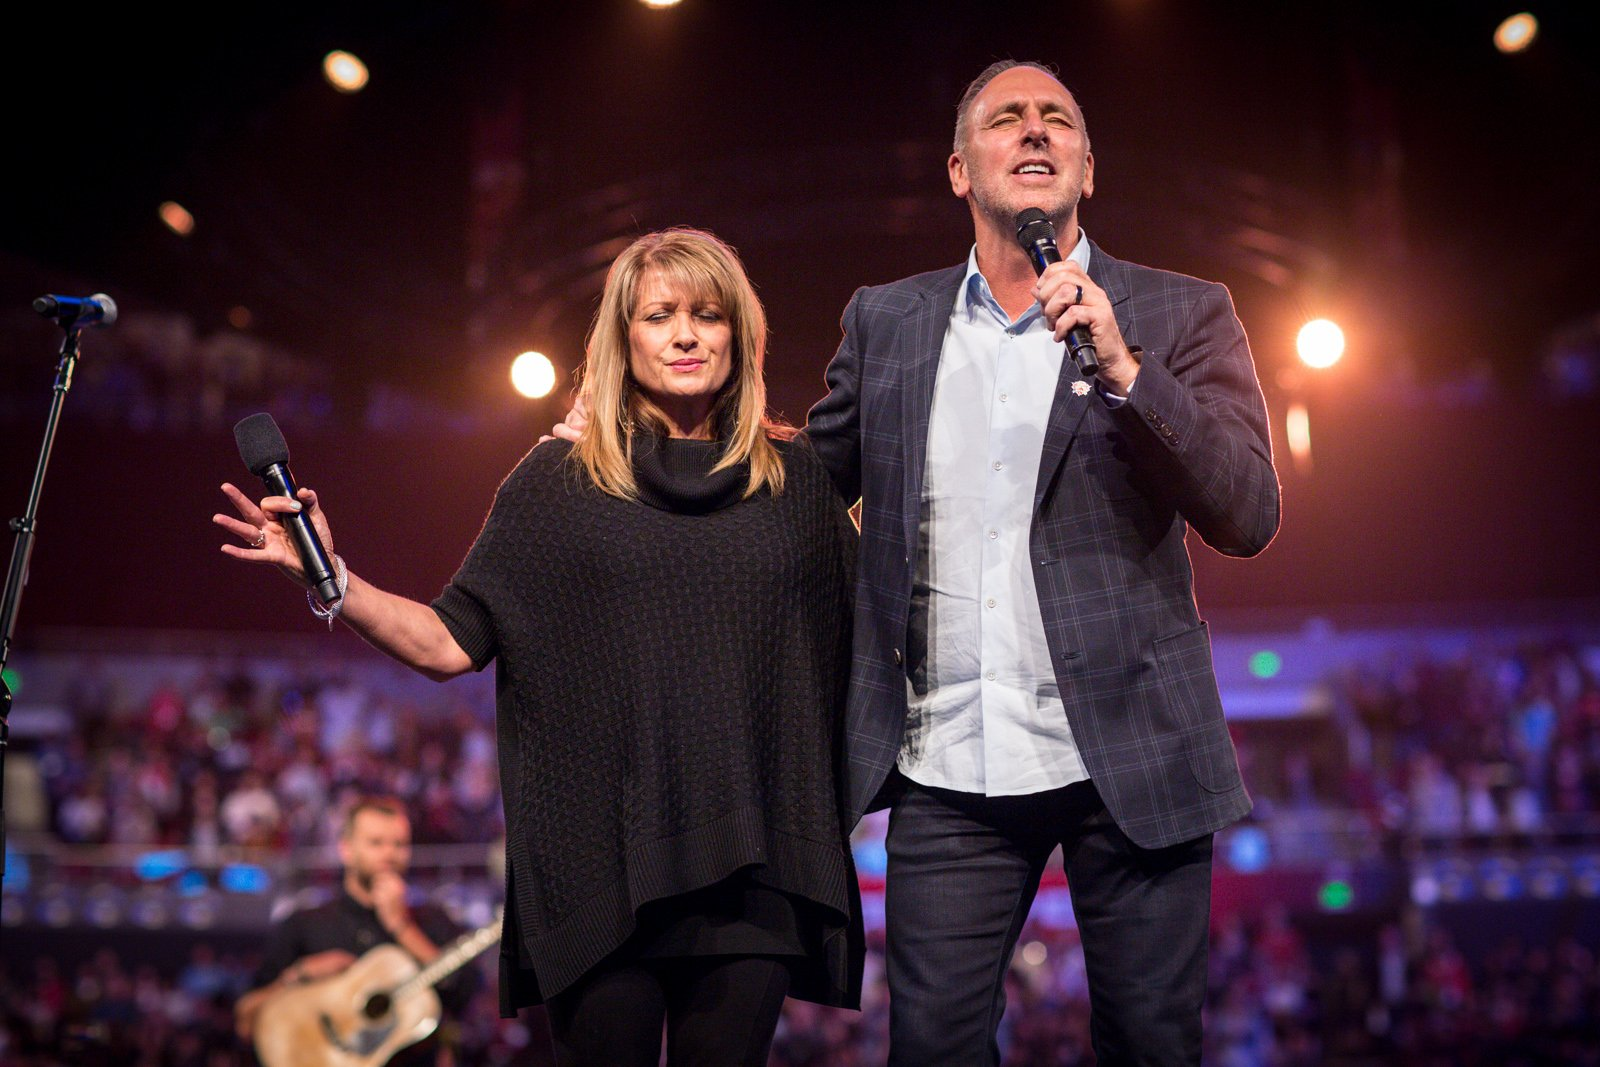 Senior Pastors Brian and Bobbie Houston in prayer at Hillsong Church. Photo courtesy Hillsong Church